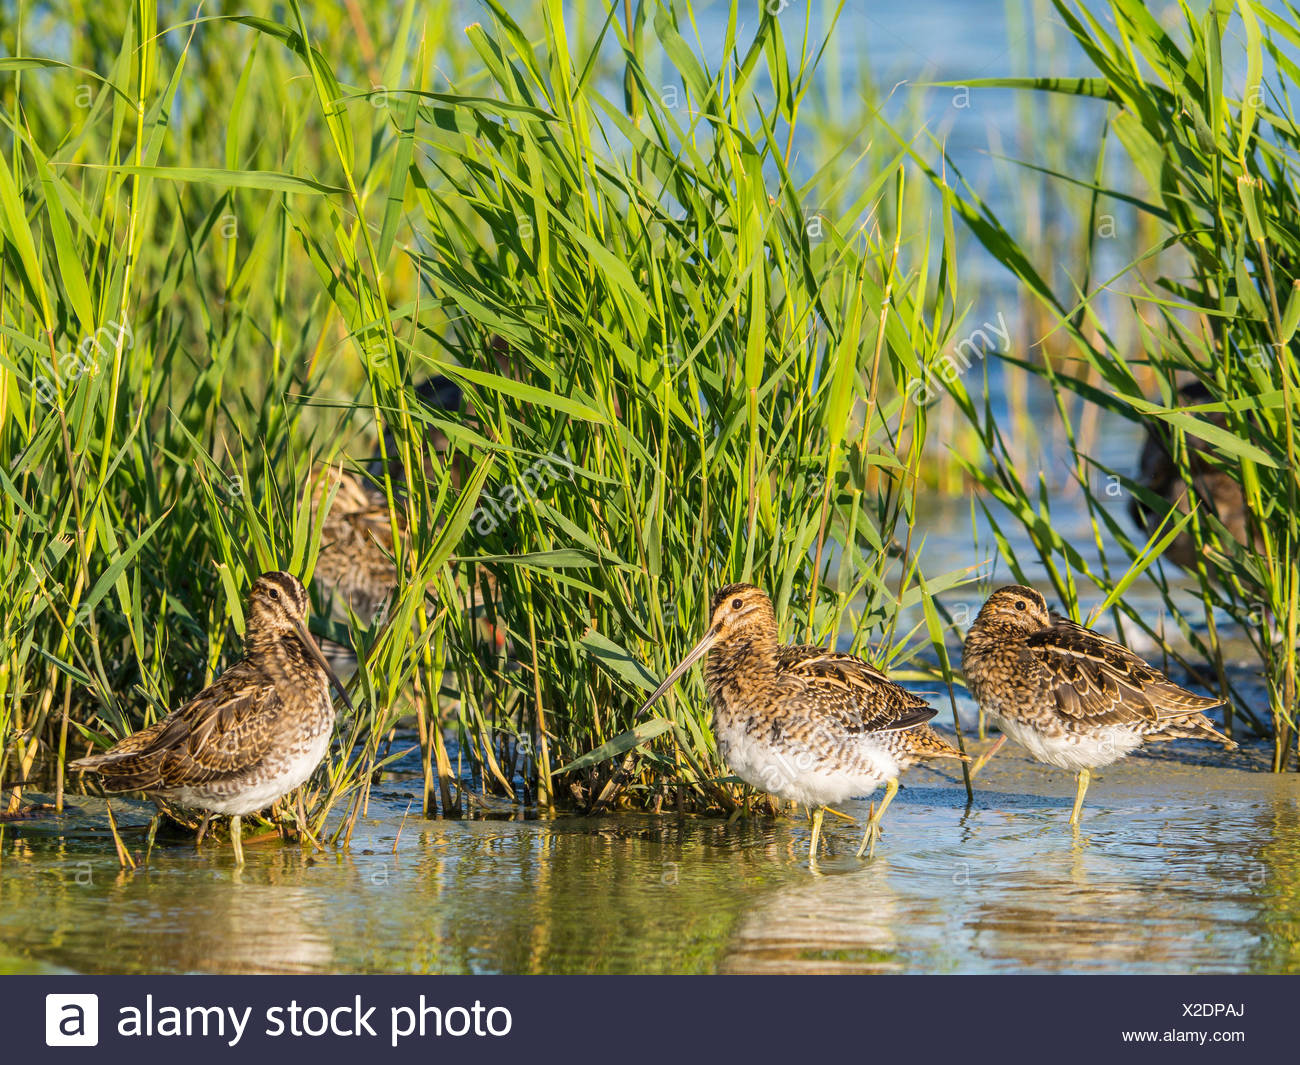 common snipe (Gallinago gallinago), troop resting in reed belt, Germany - Stock Image